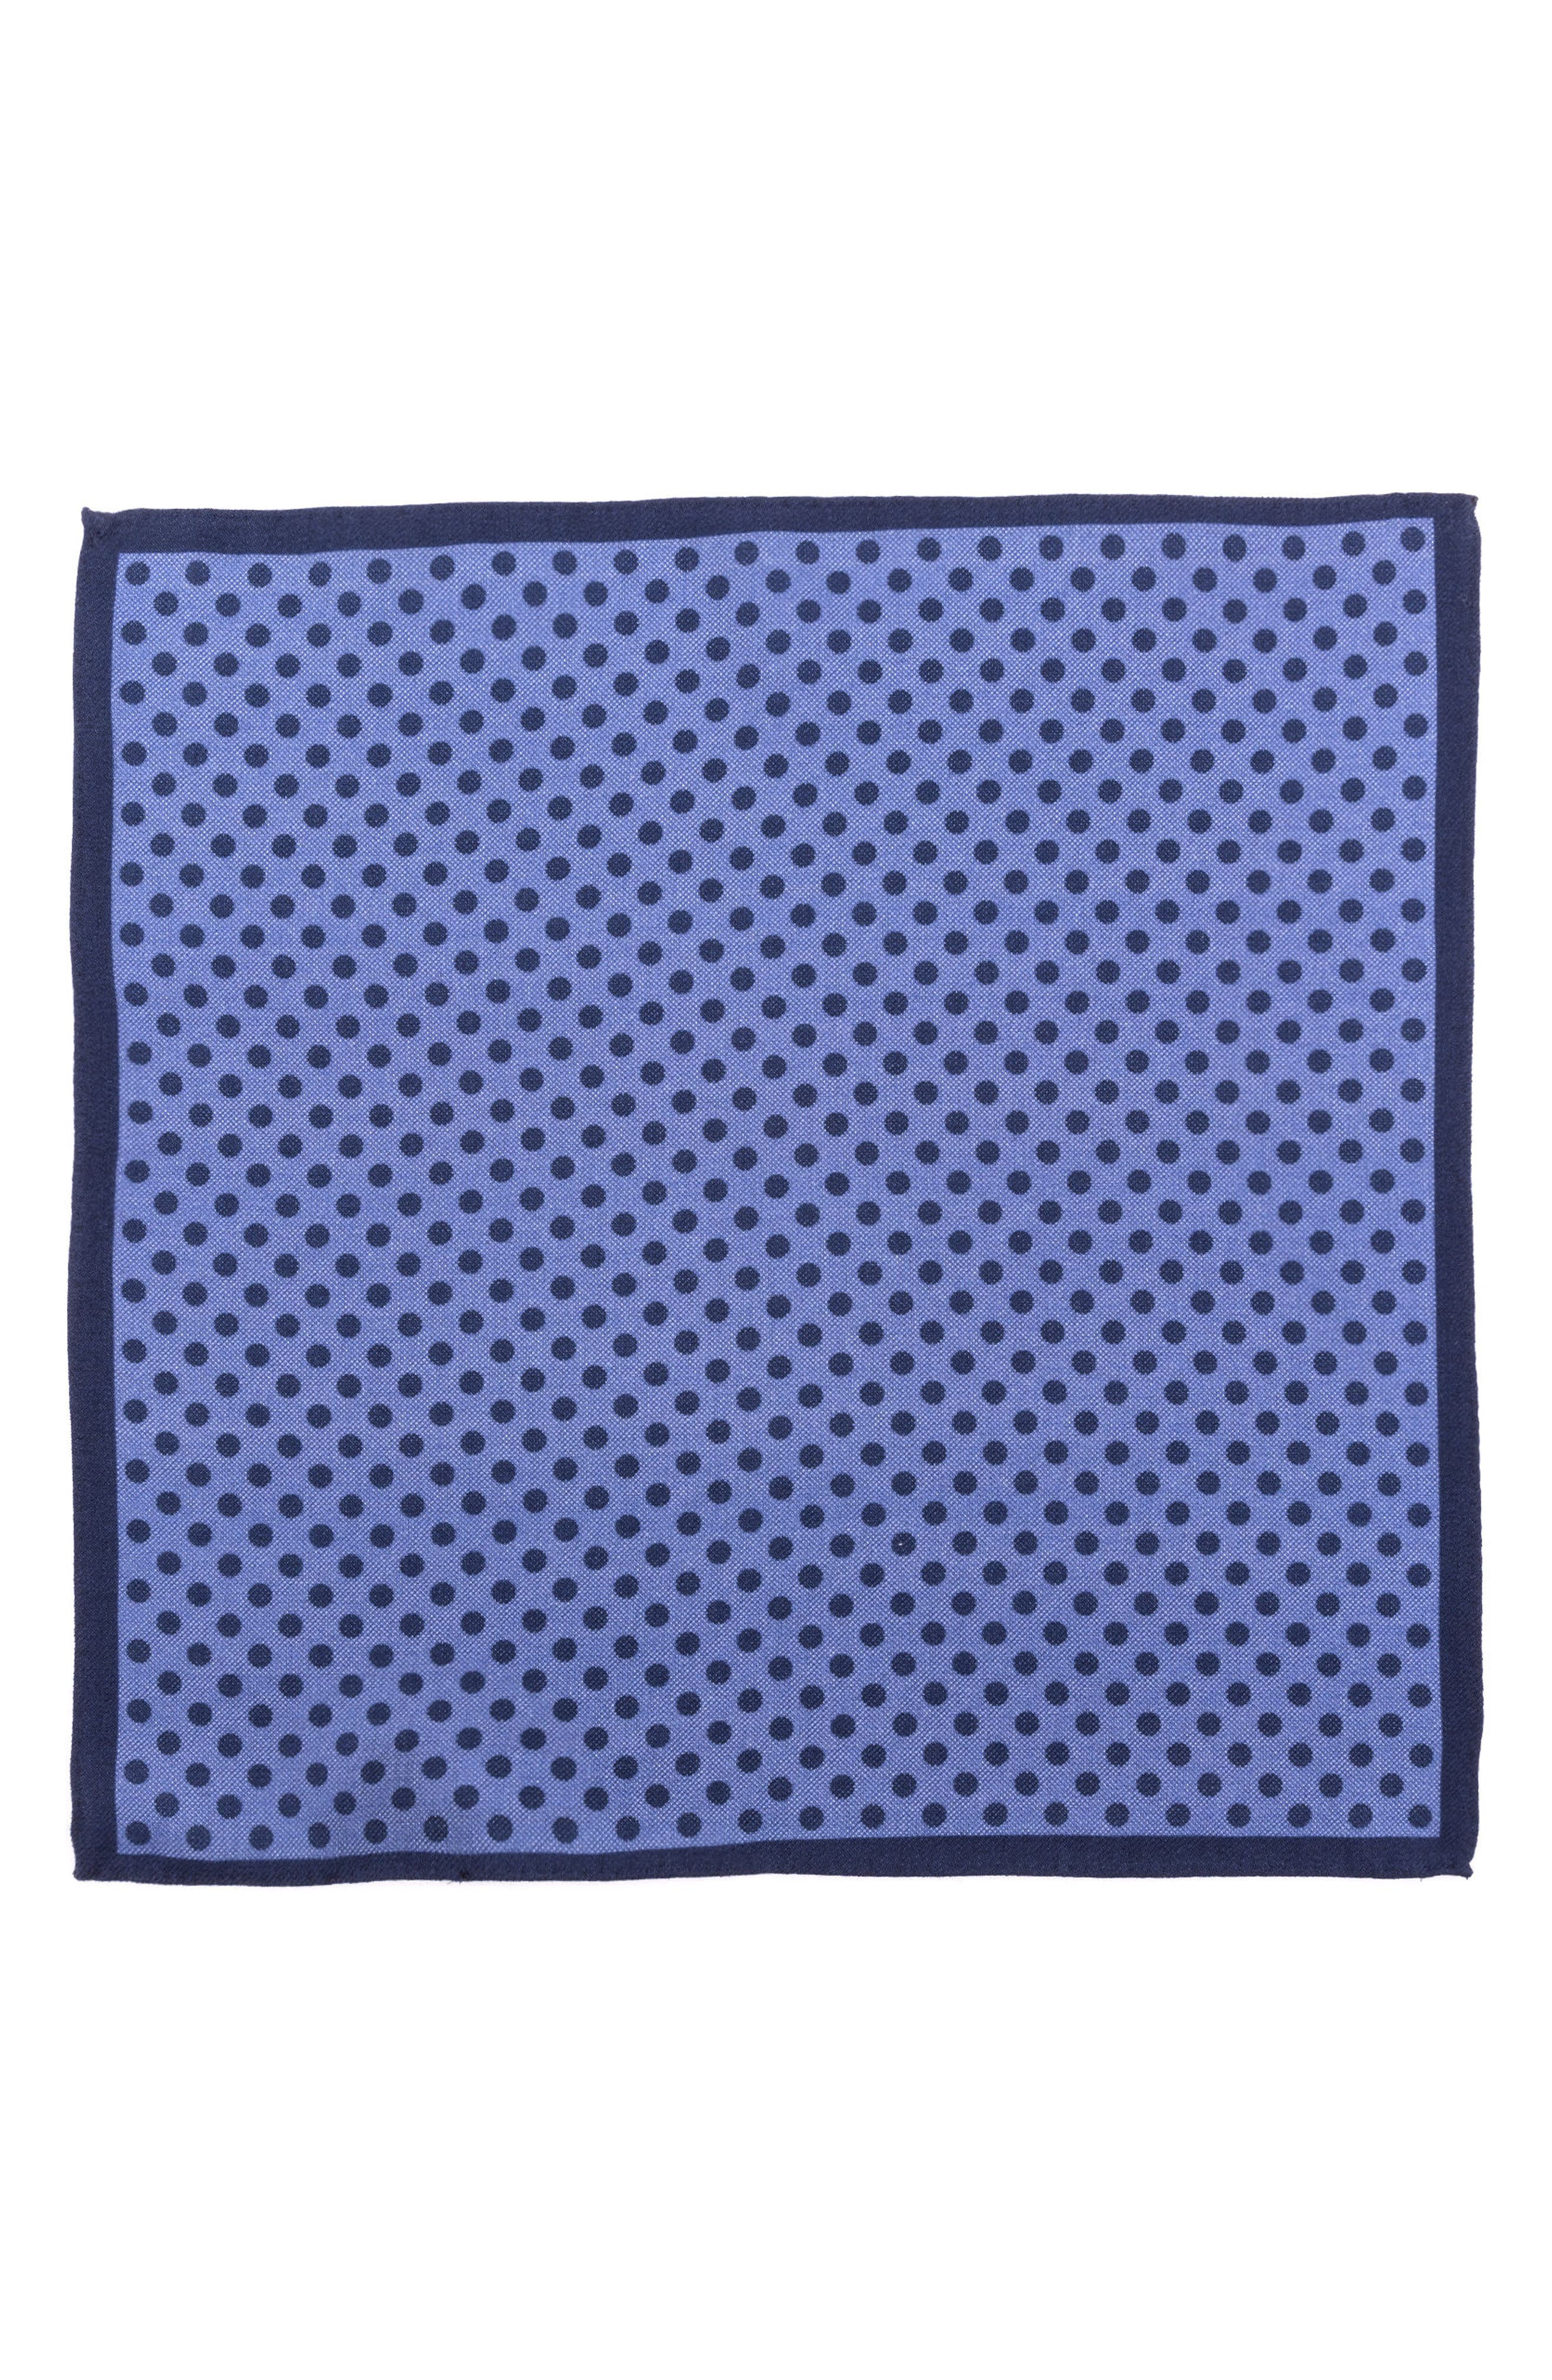 TED BAKER LONDON,                             Dot Wool Pocket Square,                             Alternate thumbnail 2, color,                             400